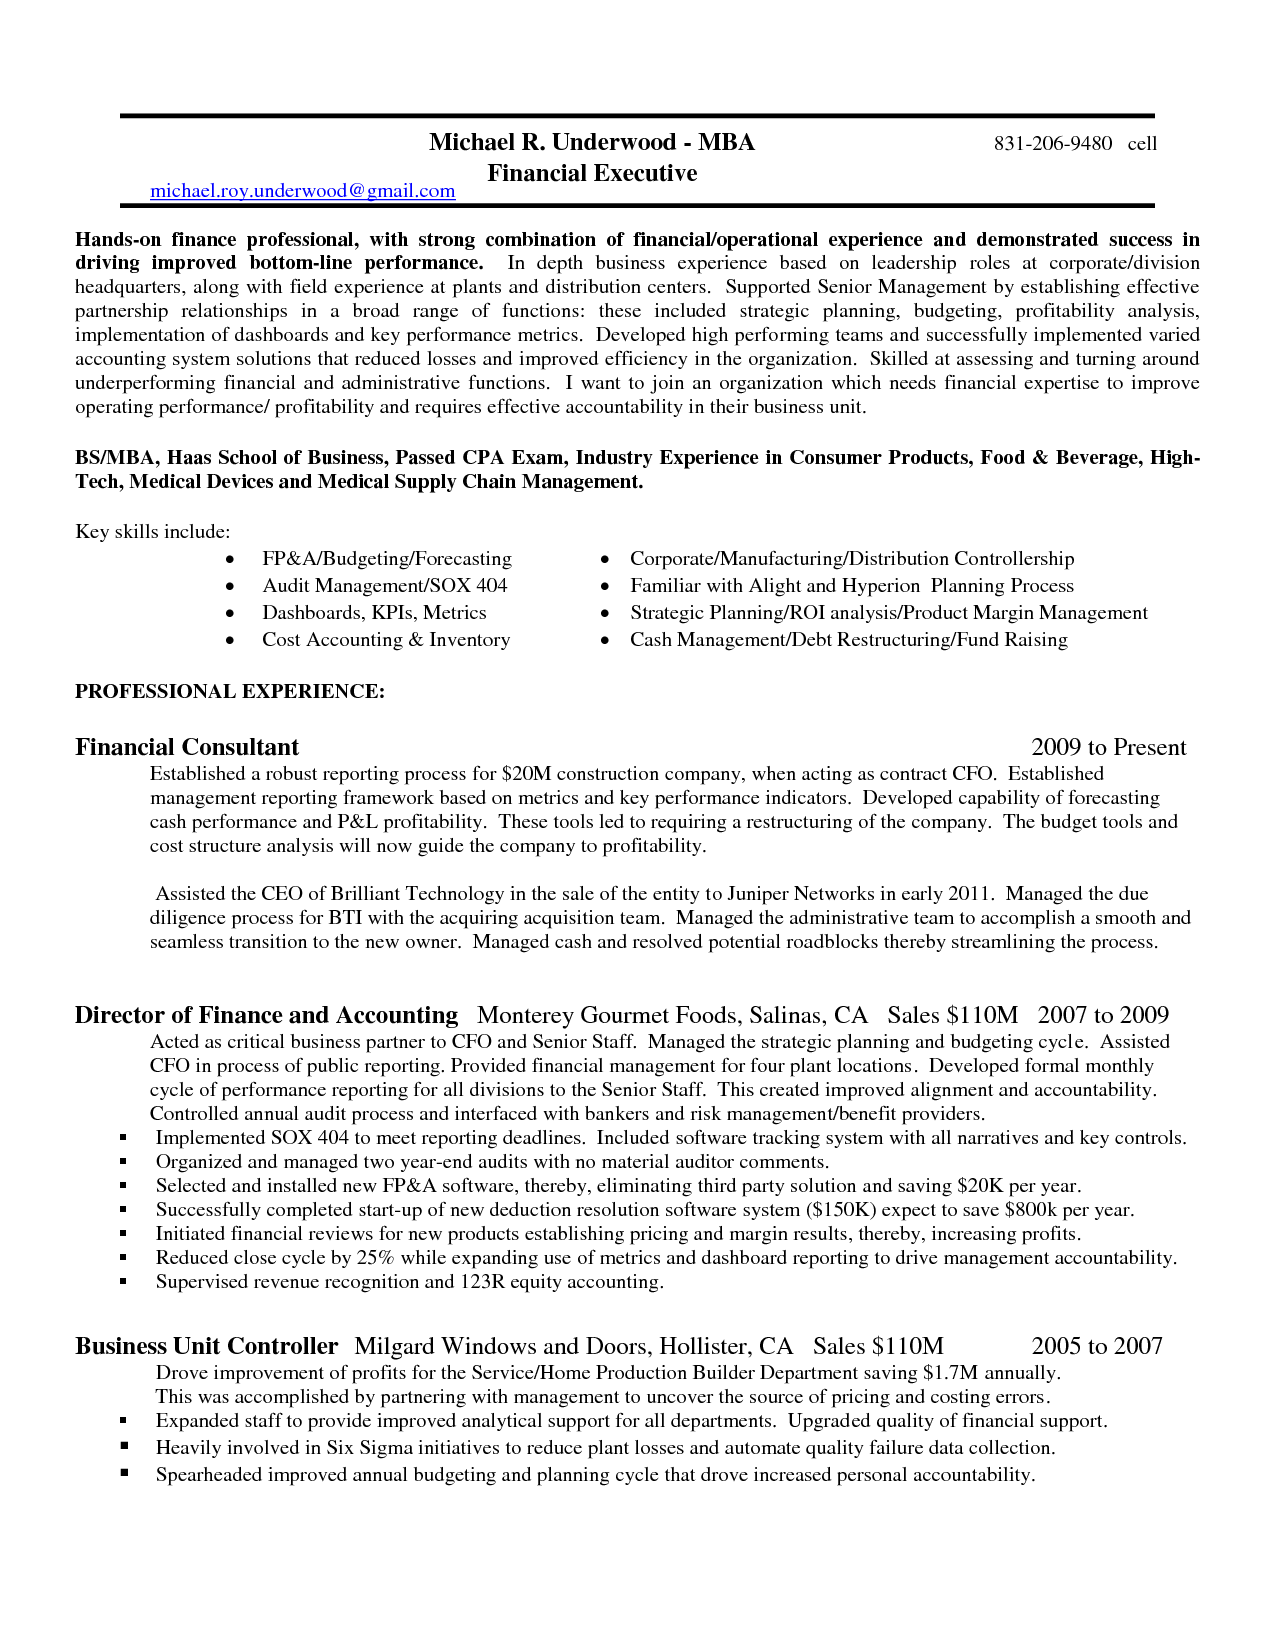 Controller Resume Examples For Employment Brilliant Sample